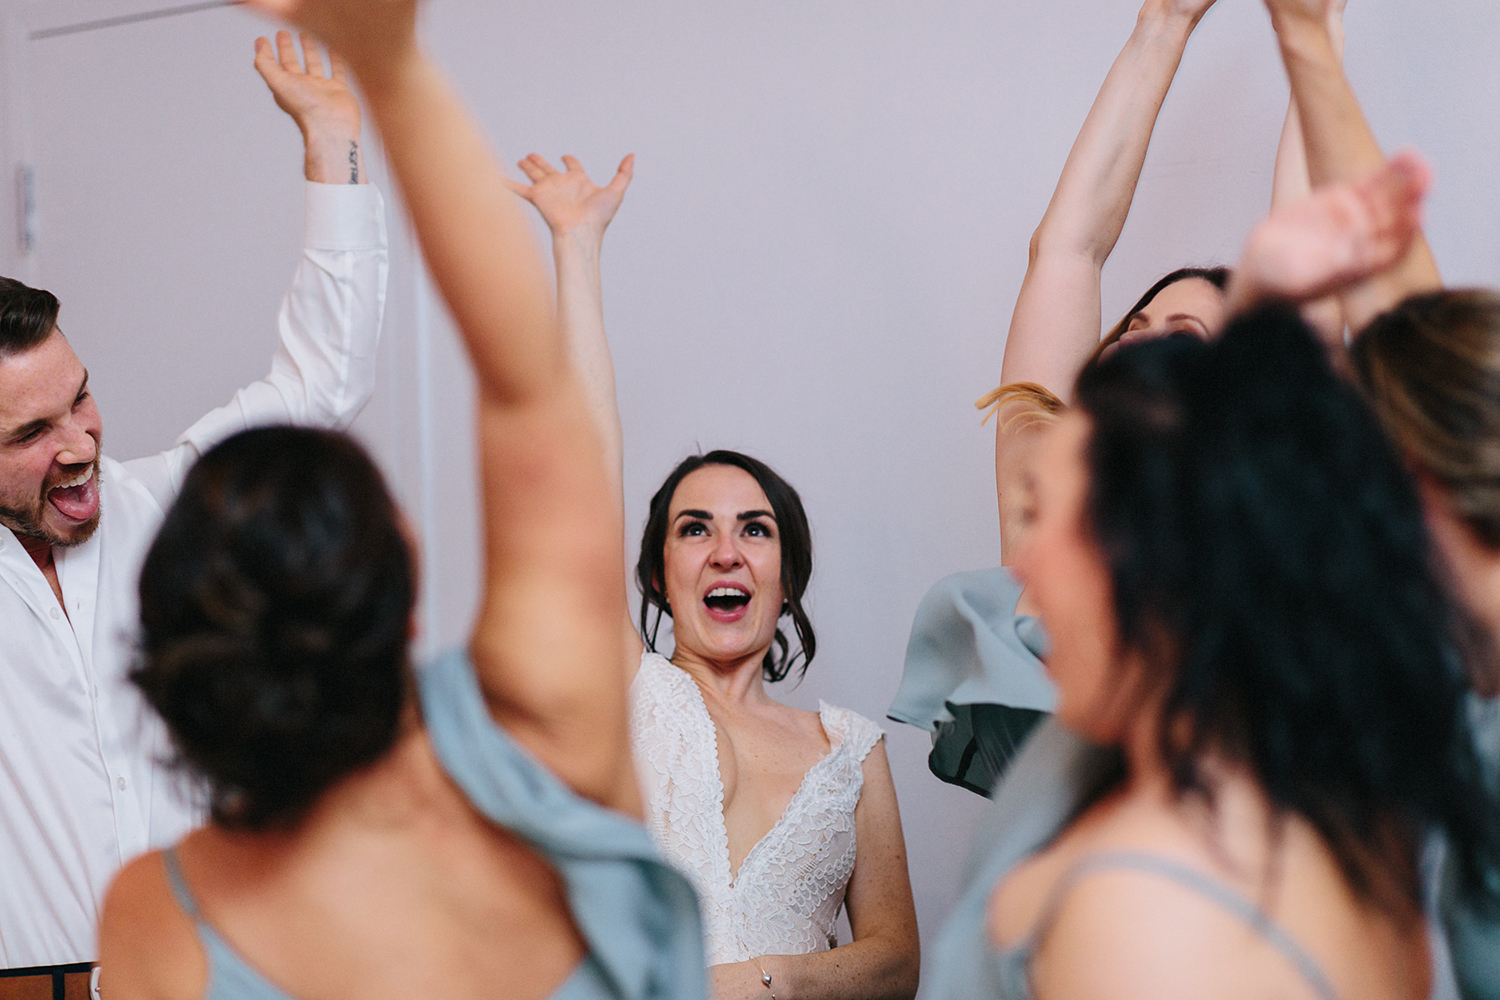 Best-Wedding-photographers-Toronto-NAtural-Candid-wedding-photography-Airship37-Reception-Venue-bride-tribe-cheering.jpg